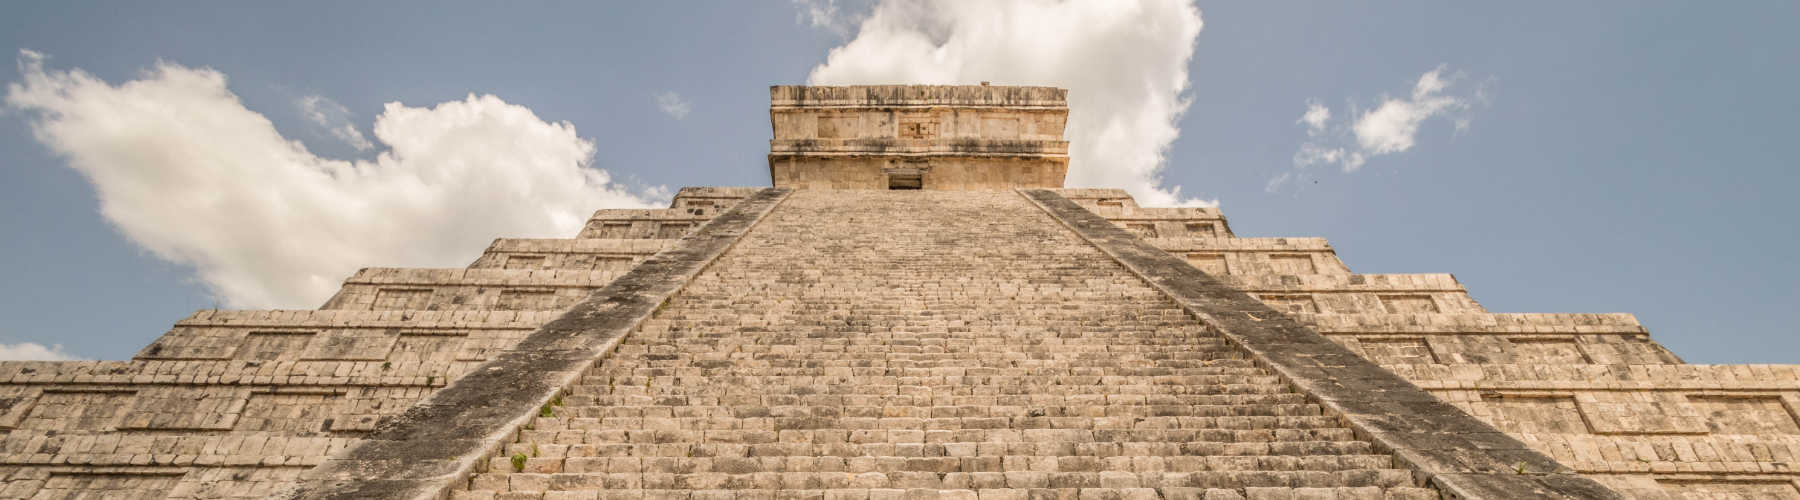 Visit Chichen Itza The Mayan Ruins In Mexico Tips